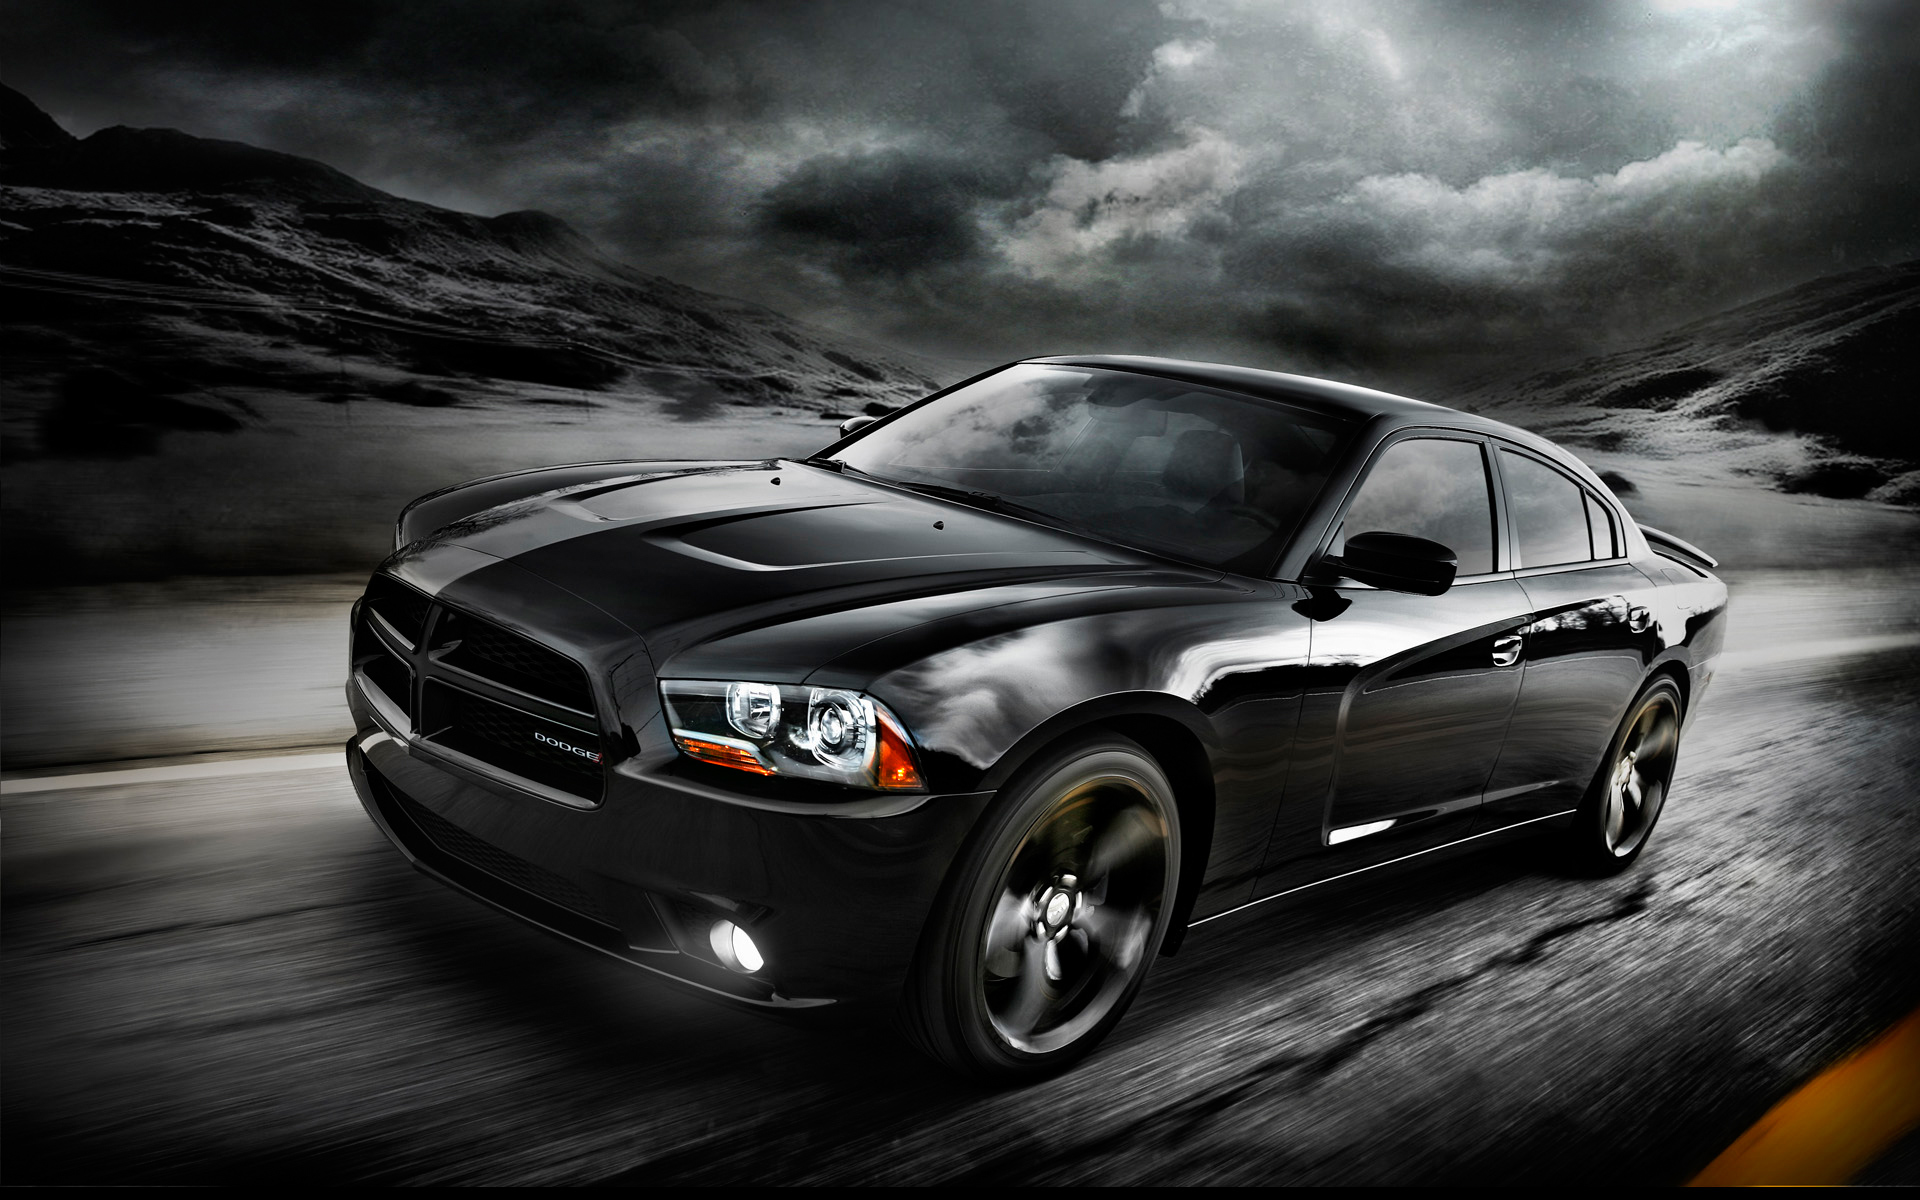 2 Door Charger Hellcat >> 2012 Dodge Charger Wallpaper | HD Car Wallpapers | ID #2464